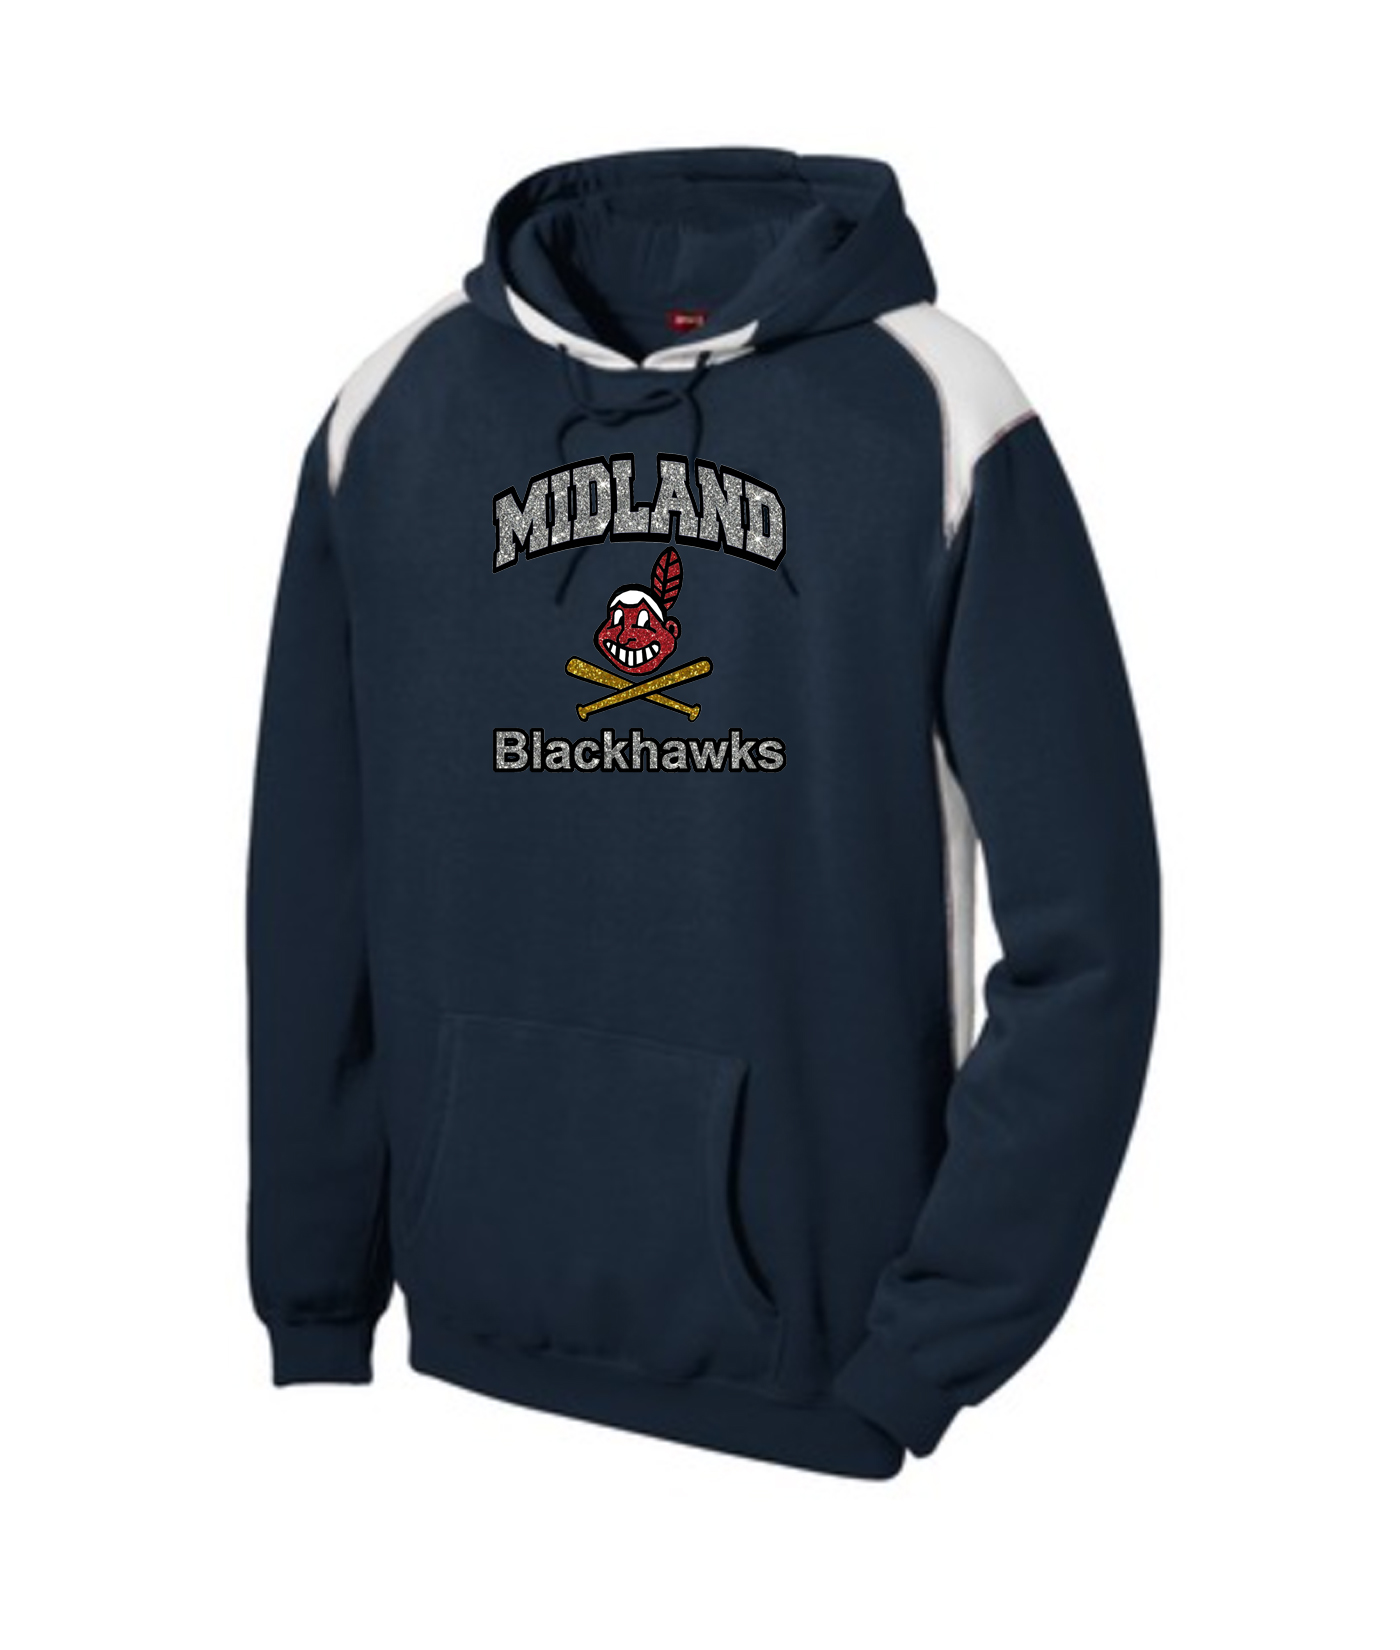 Sport-Tek Navy Pullover Hooded Sweatshirt with Contrast Color Glitter Curved Blackhawk with Silver Glitter